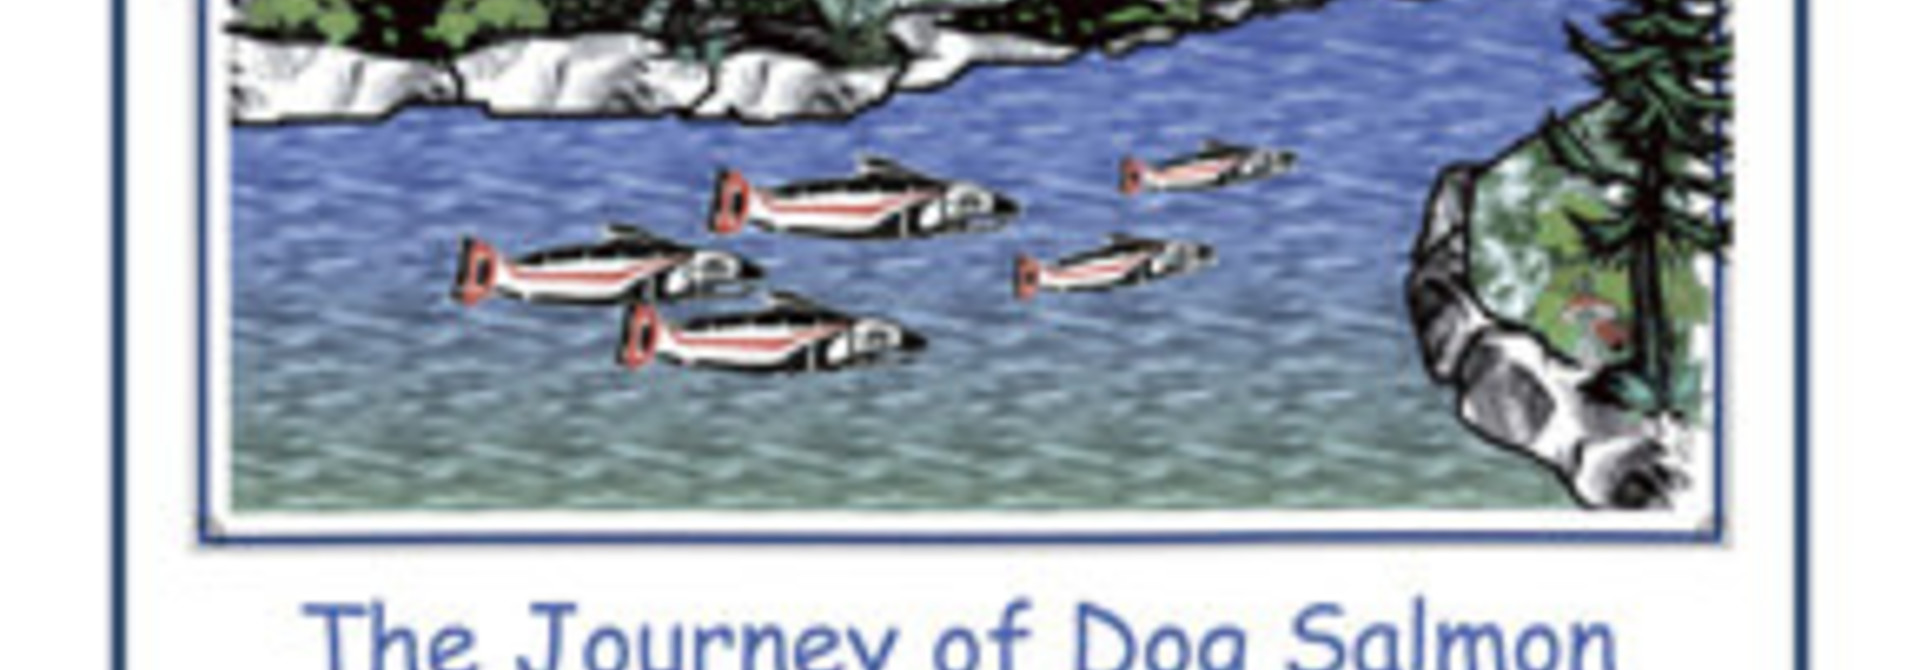 Book-The Journey of Dog Salmon